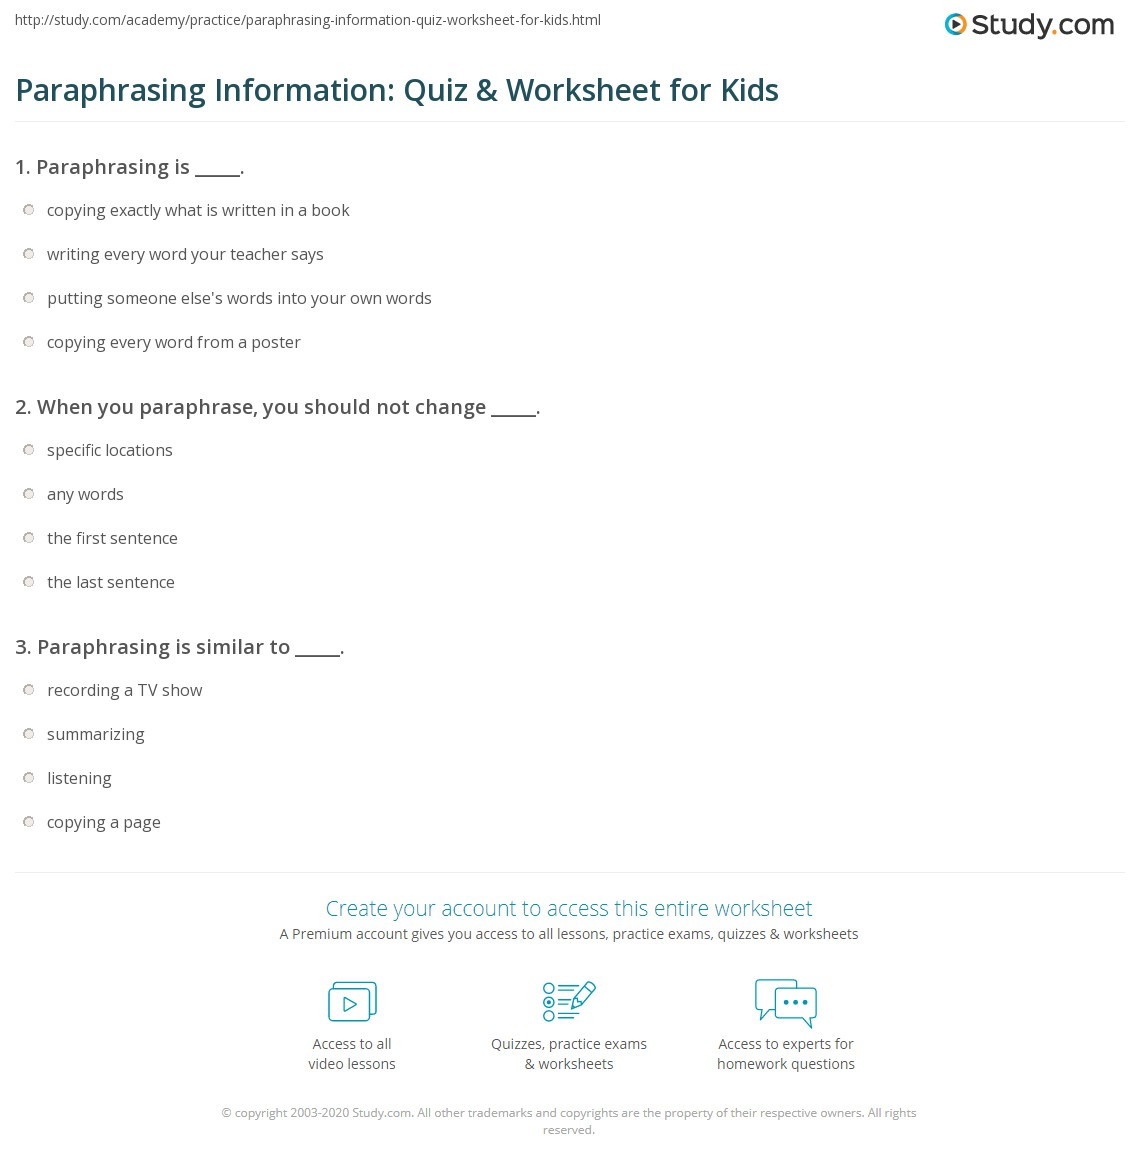 Paraphrasing Worksheets 4th Grade Paraphrasing Information Quiz & Worksheet for Kids